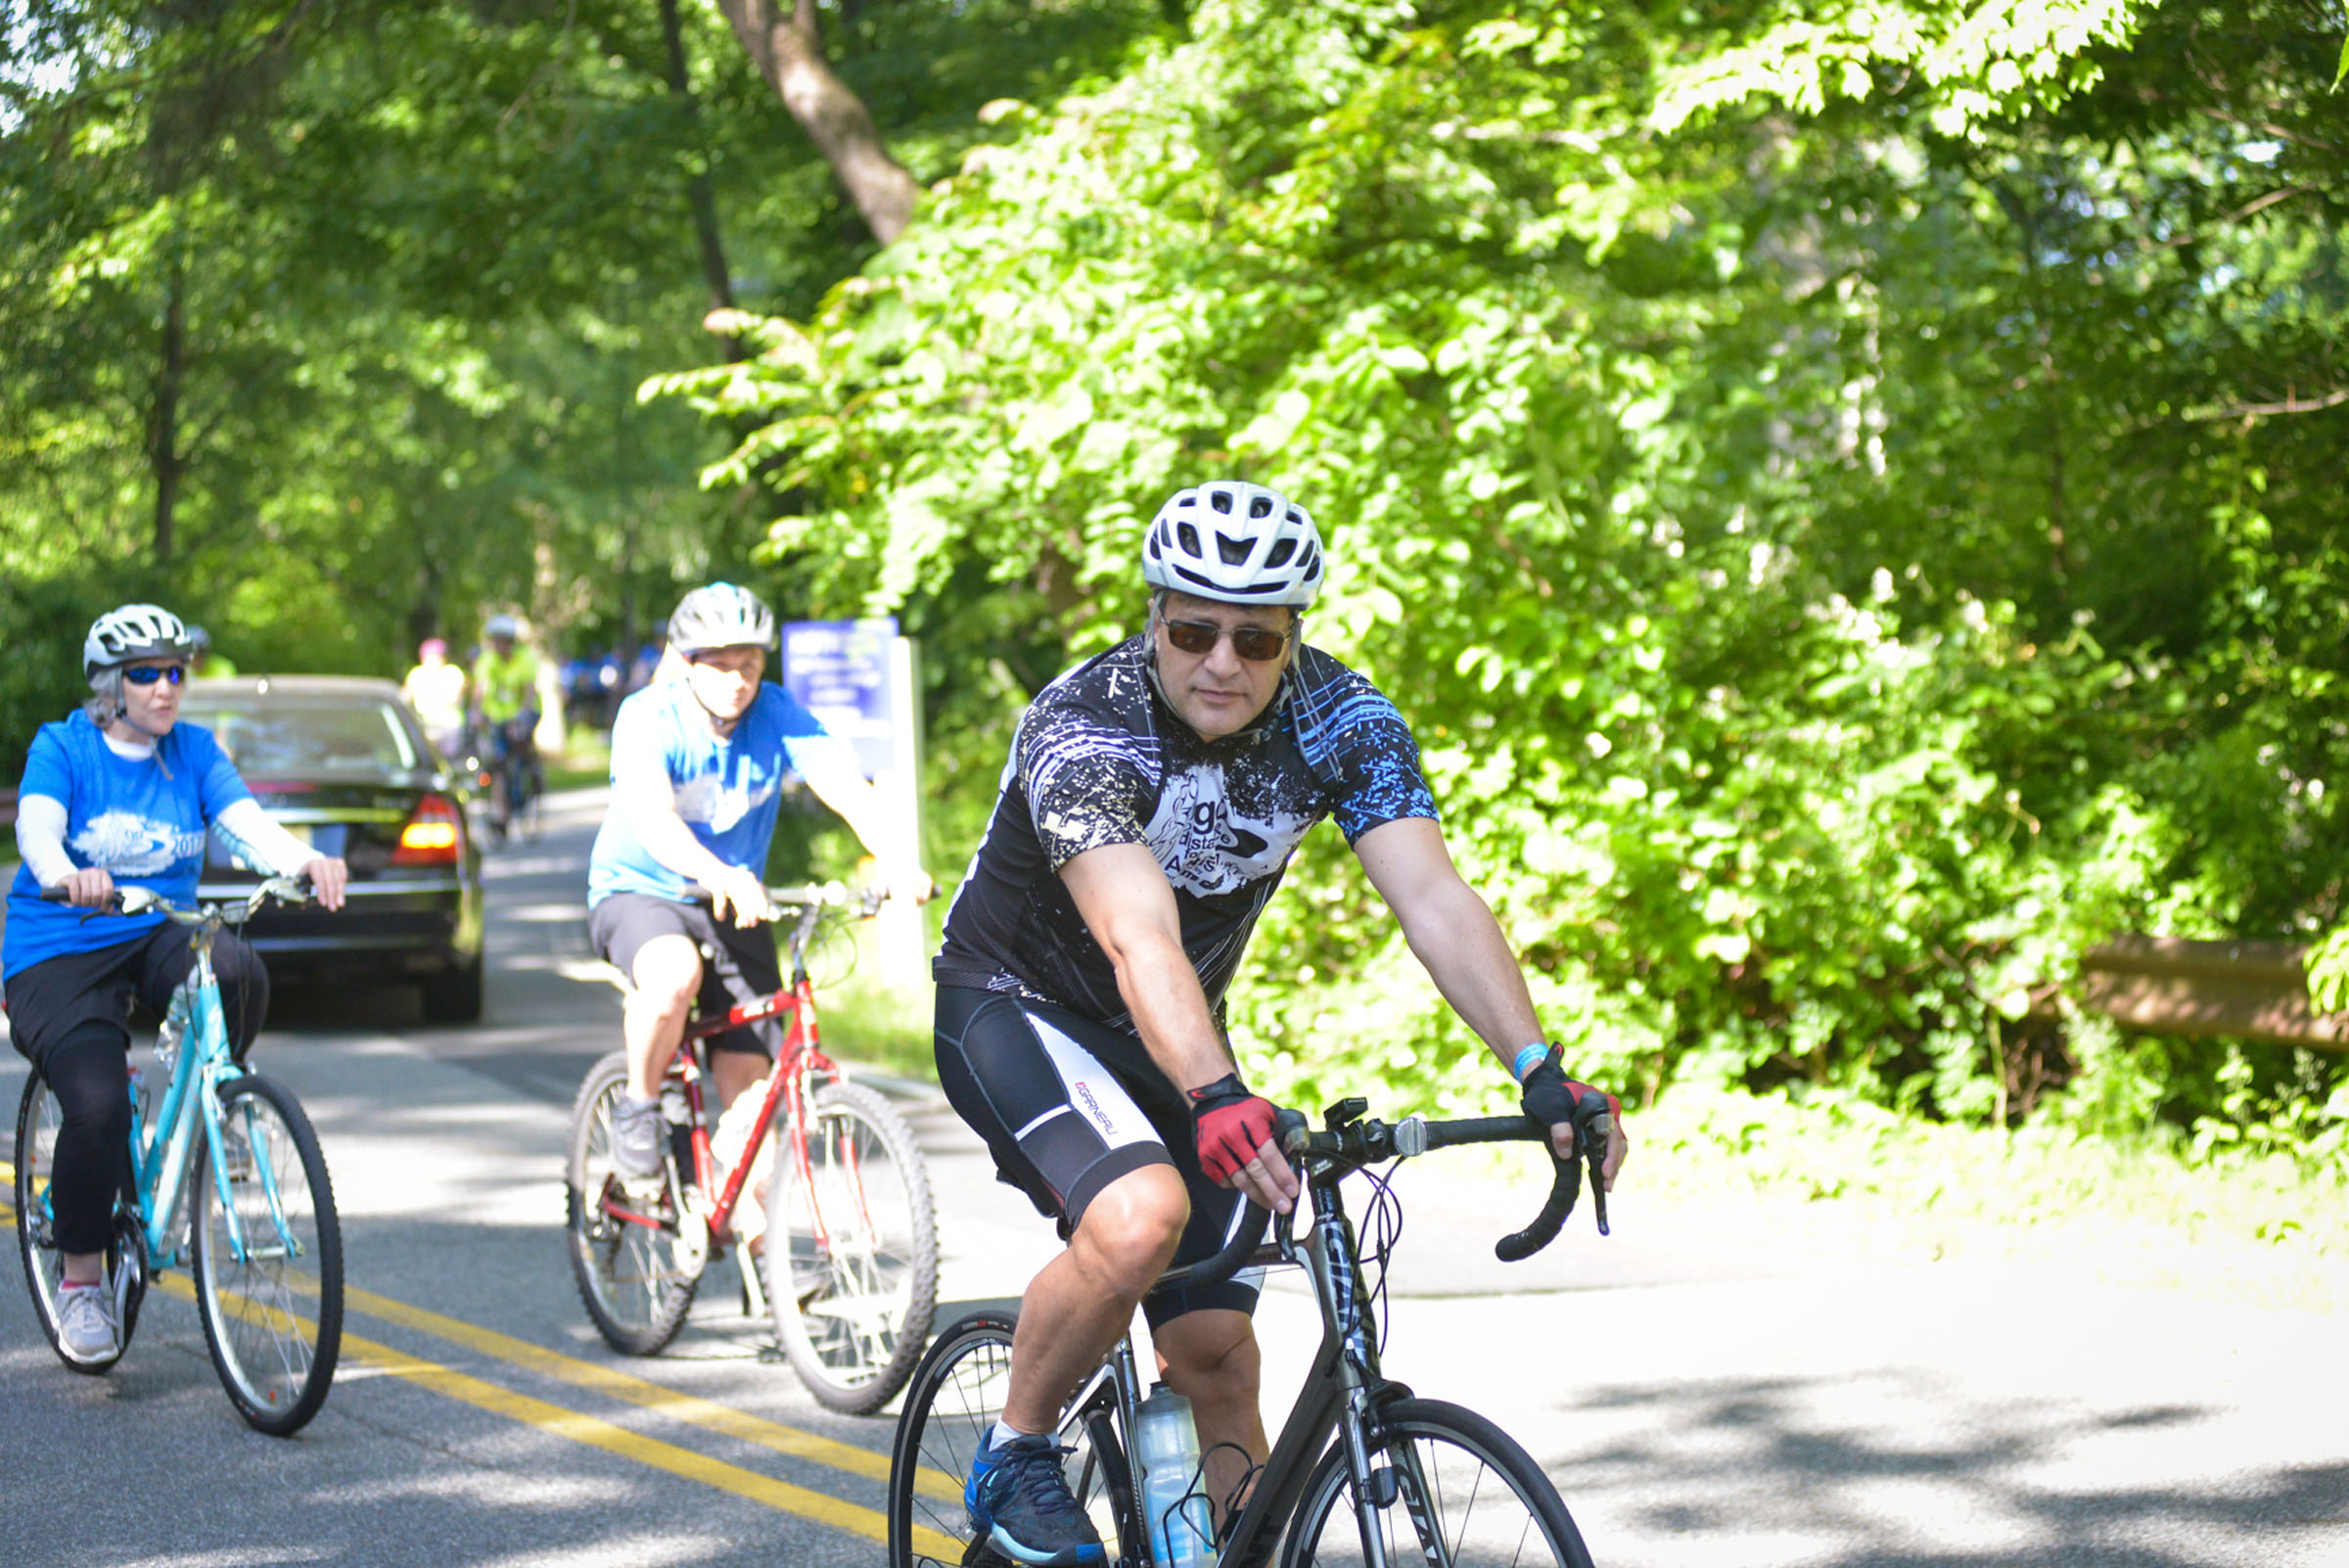 2017-06-04 GTD4A Charity Bike Ride - BCC - Paramus NJ-1947.jpg